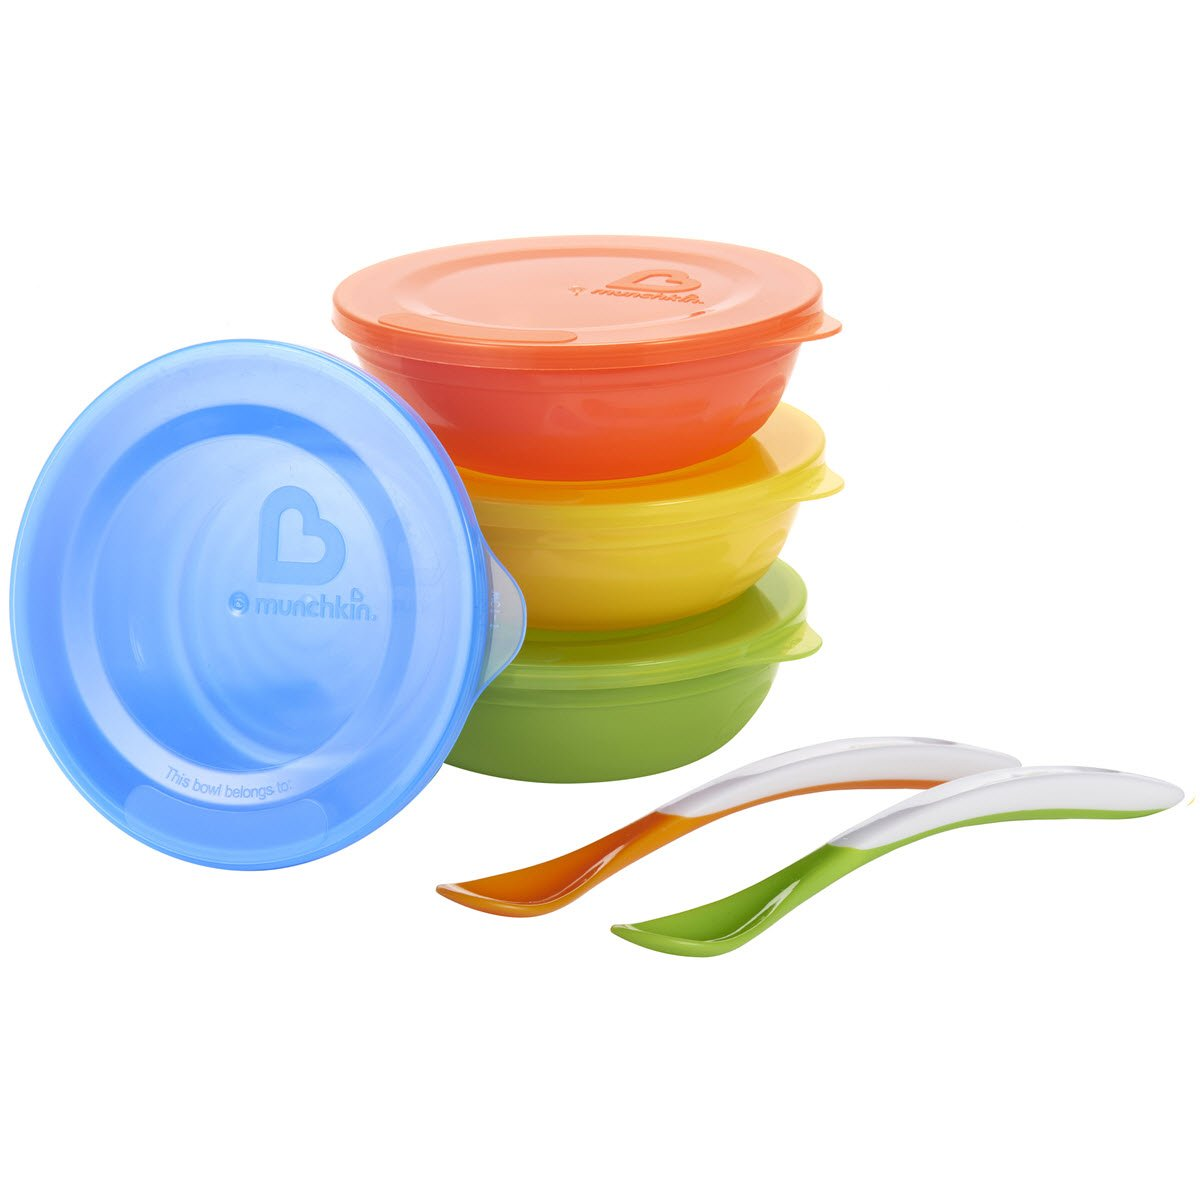 Top 9 Best Baby Bowls and Plates Reviews in 2020 8